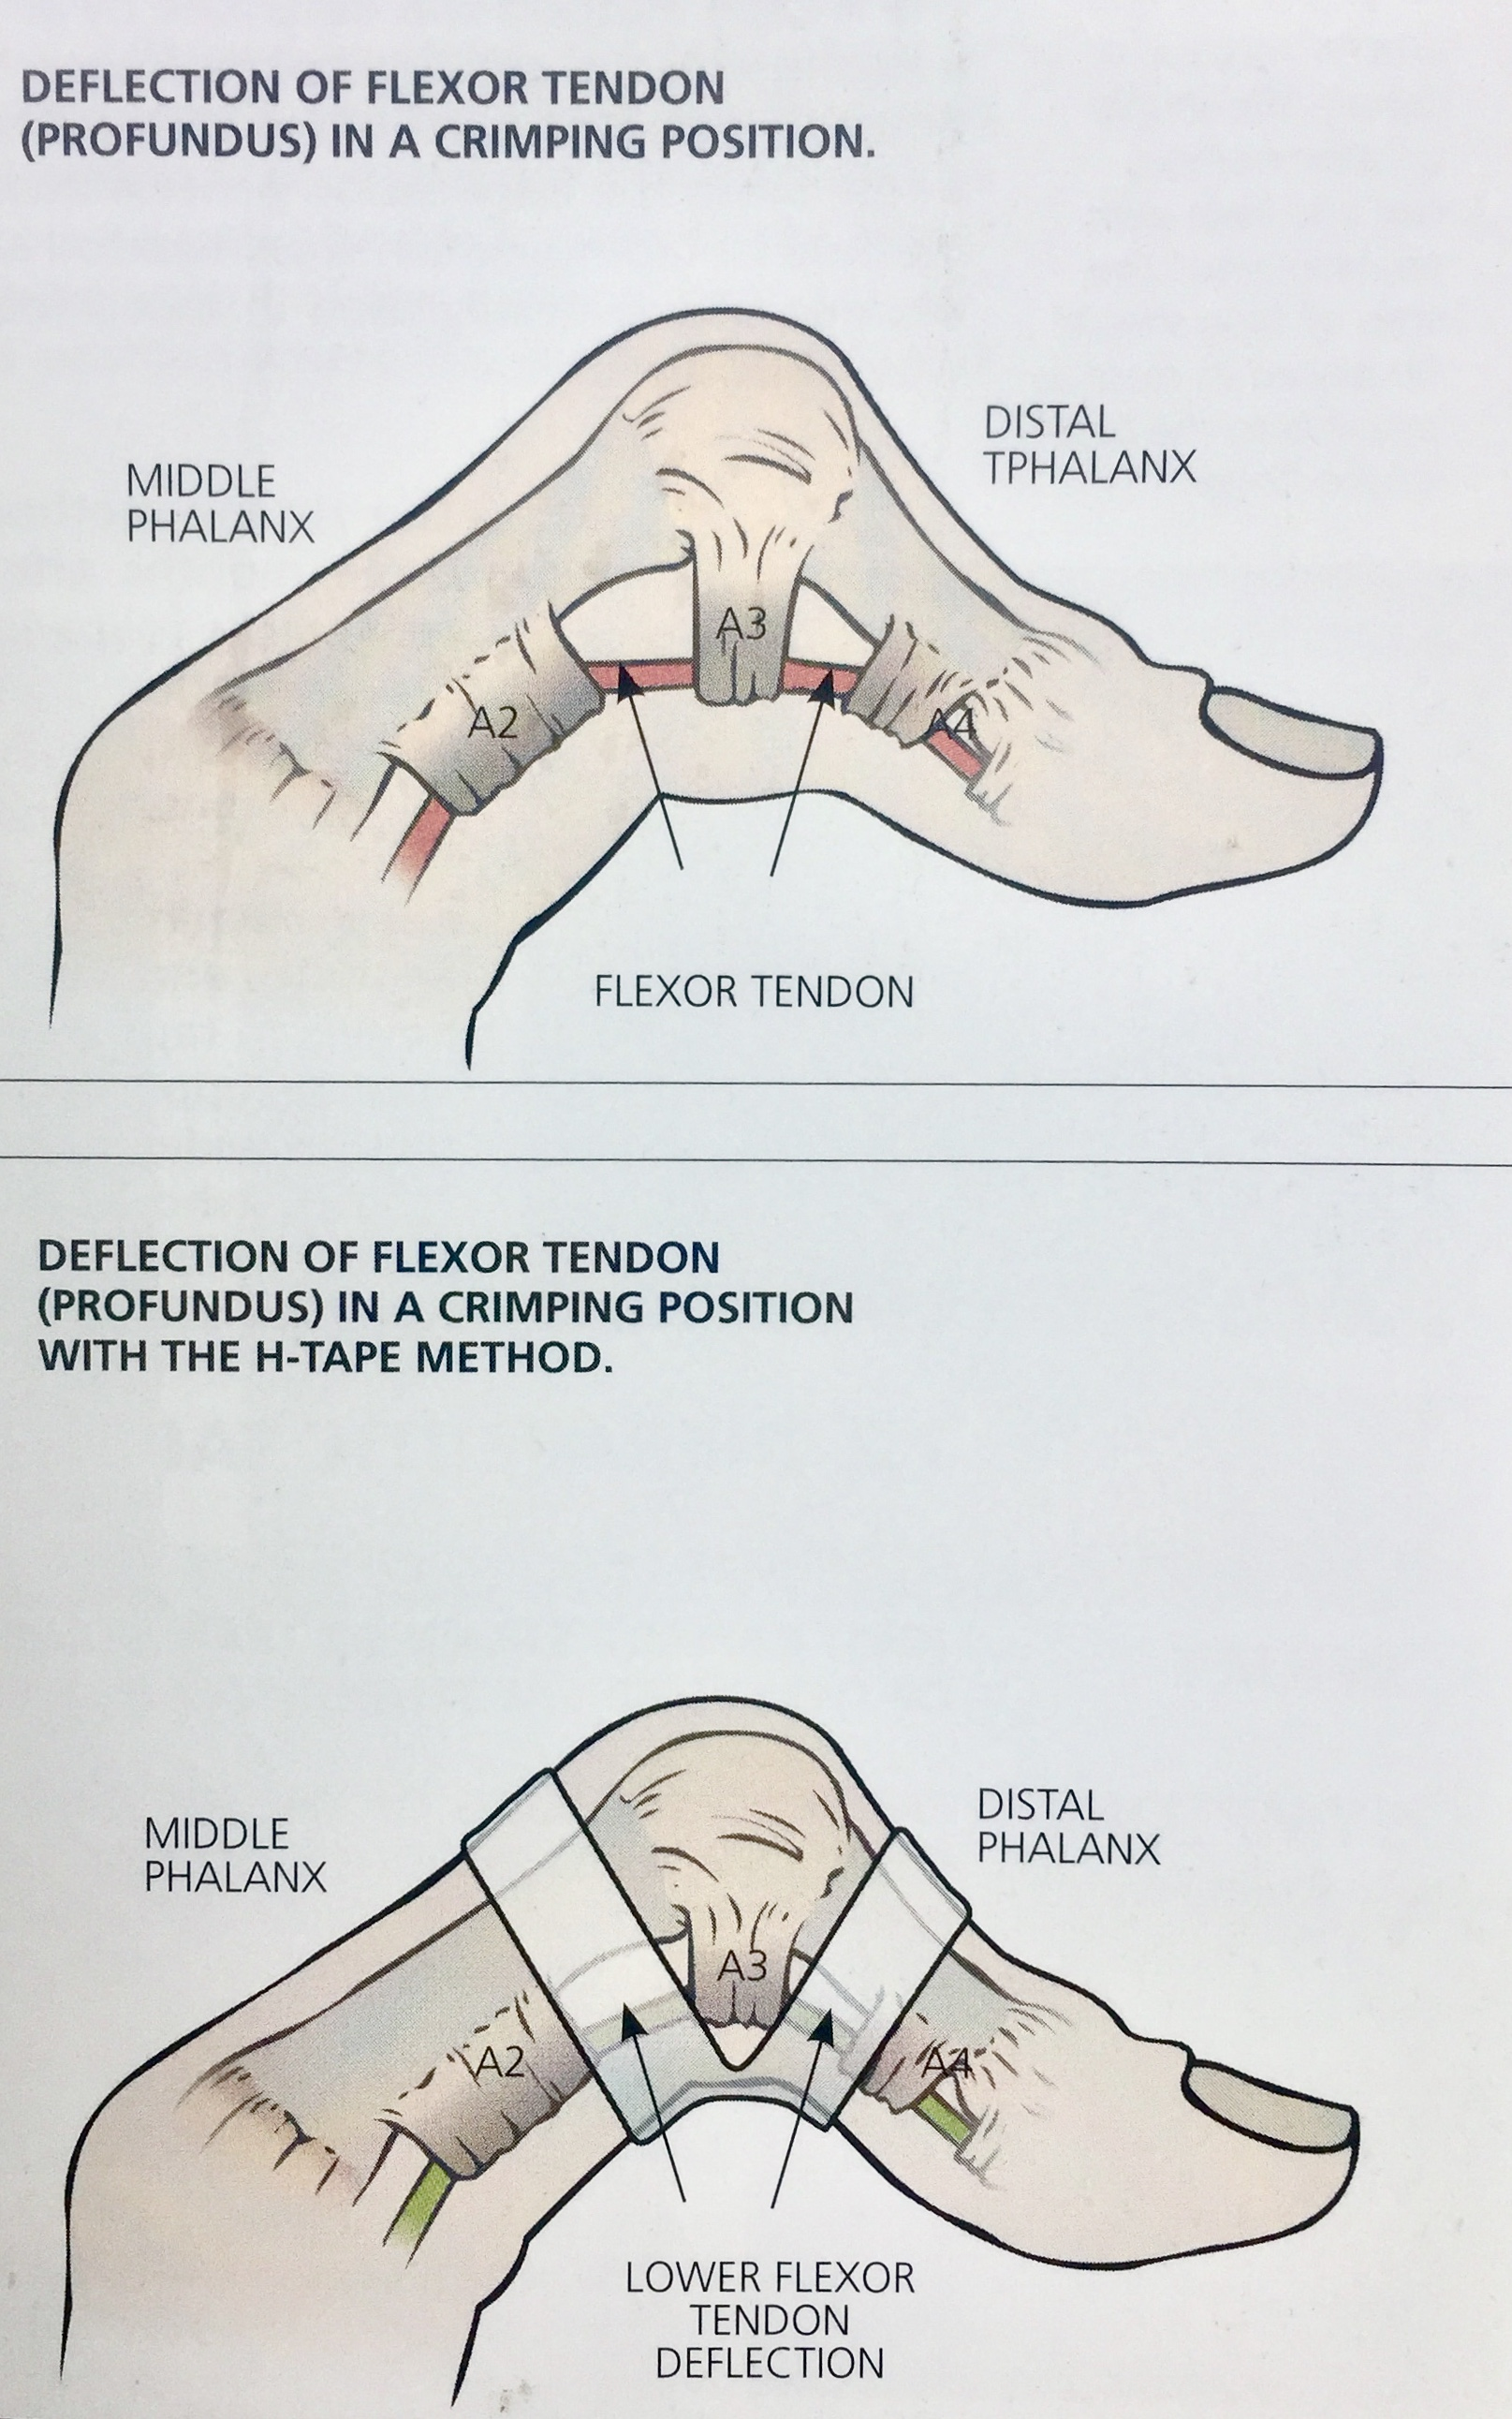 """Notice the location of the H-tape """"bridge"""". This allows optimal support of the A3 pulley and reduction of pulley-tendon angle."""